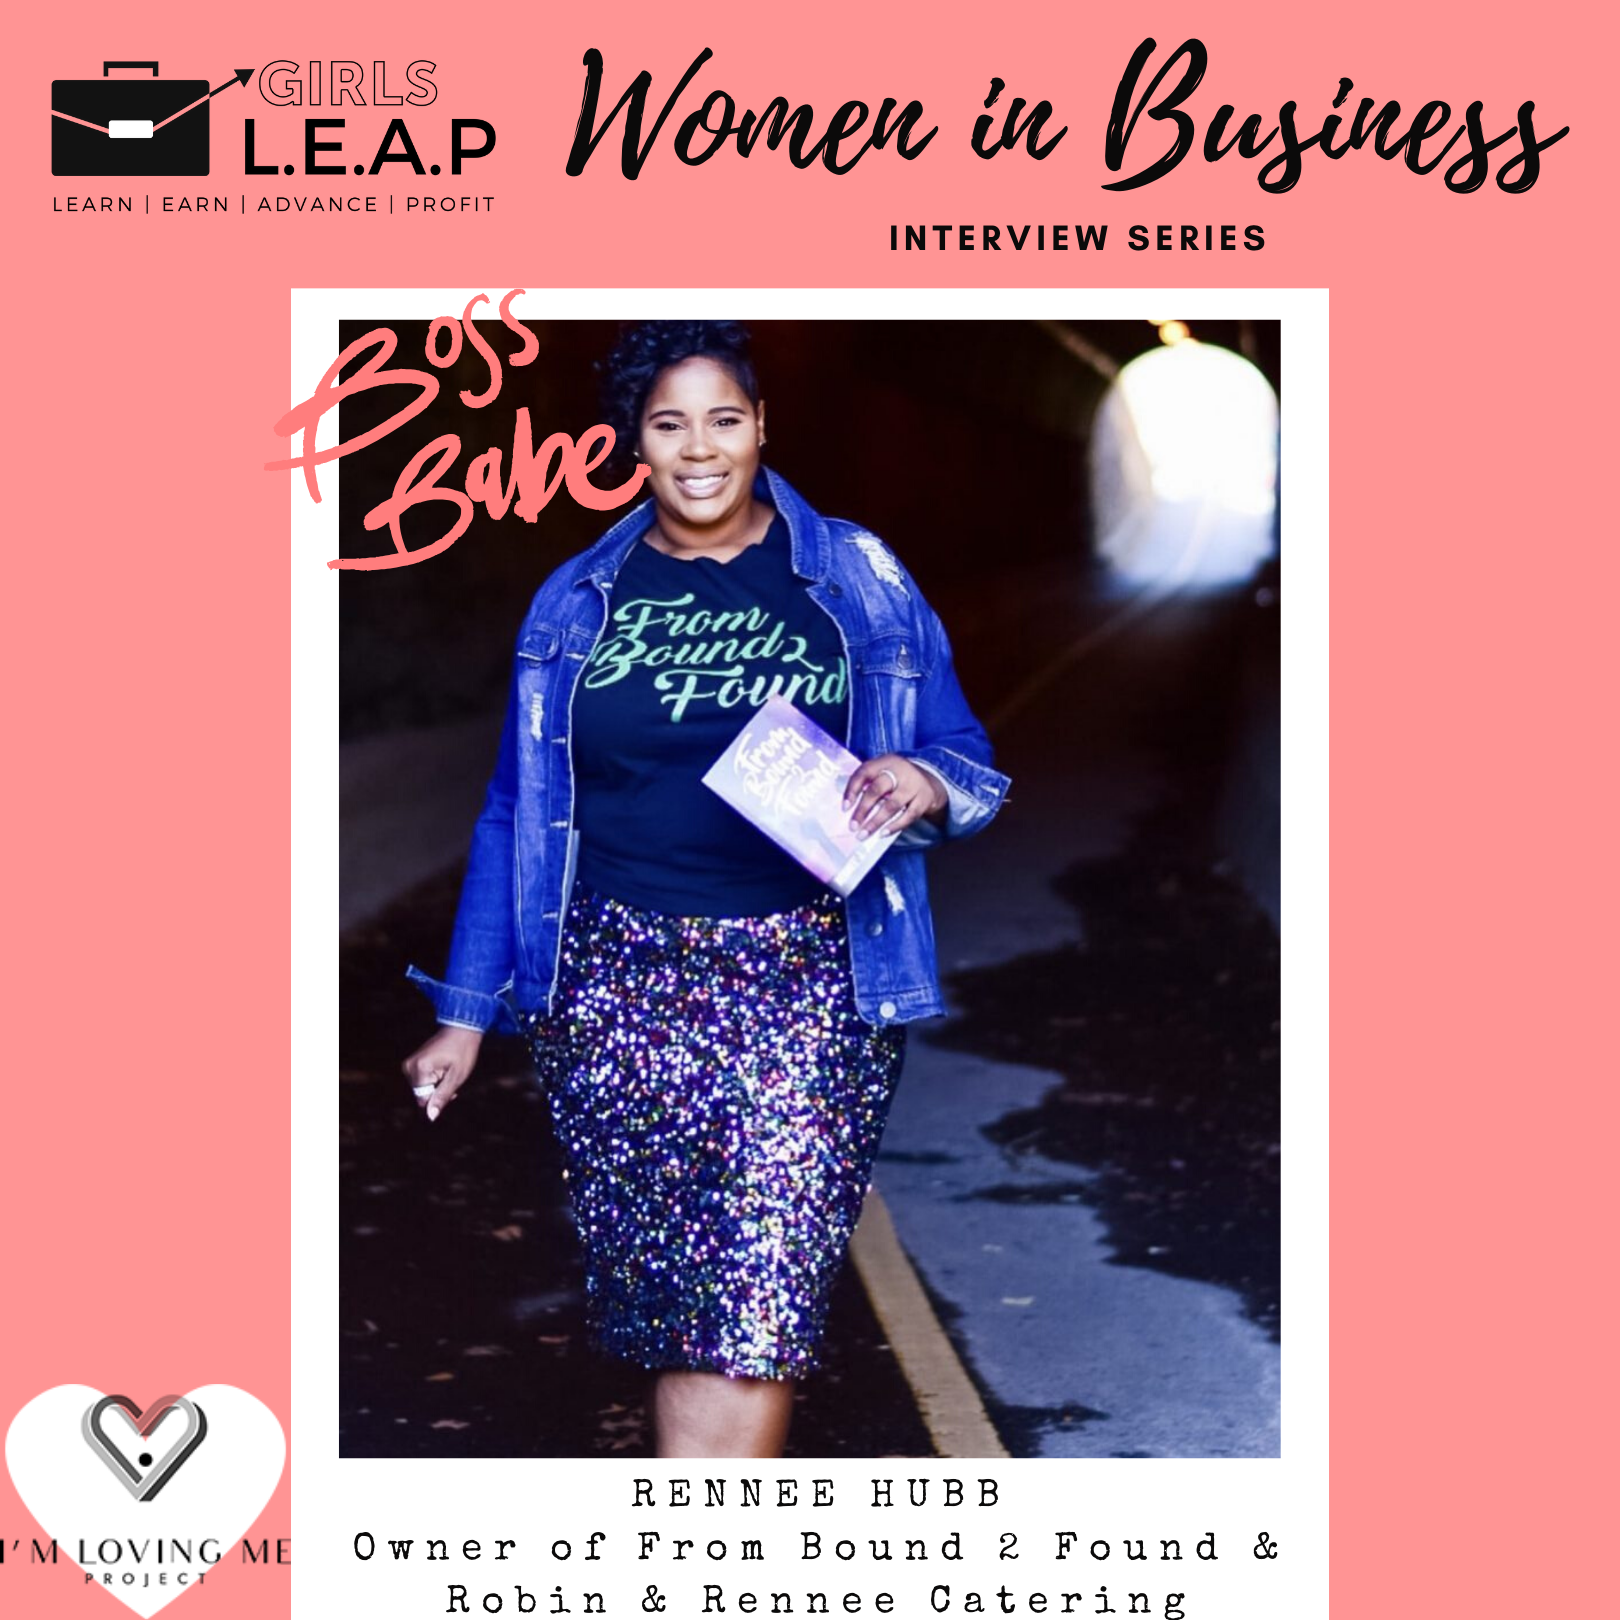 Women in Business Wednesday: Rennee Hubb